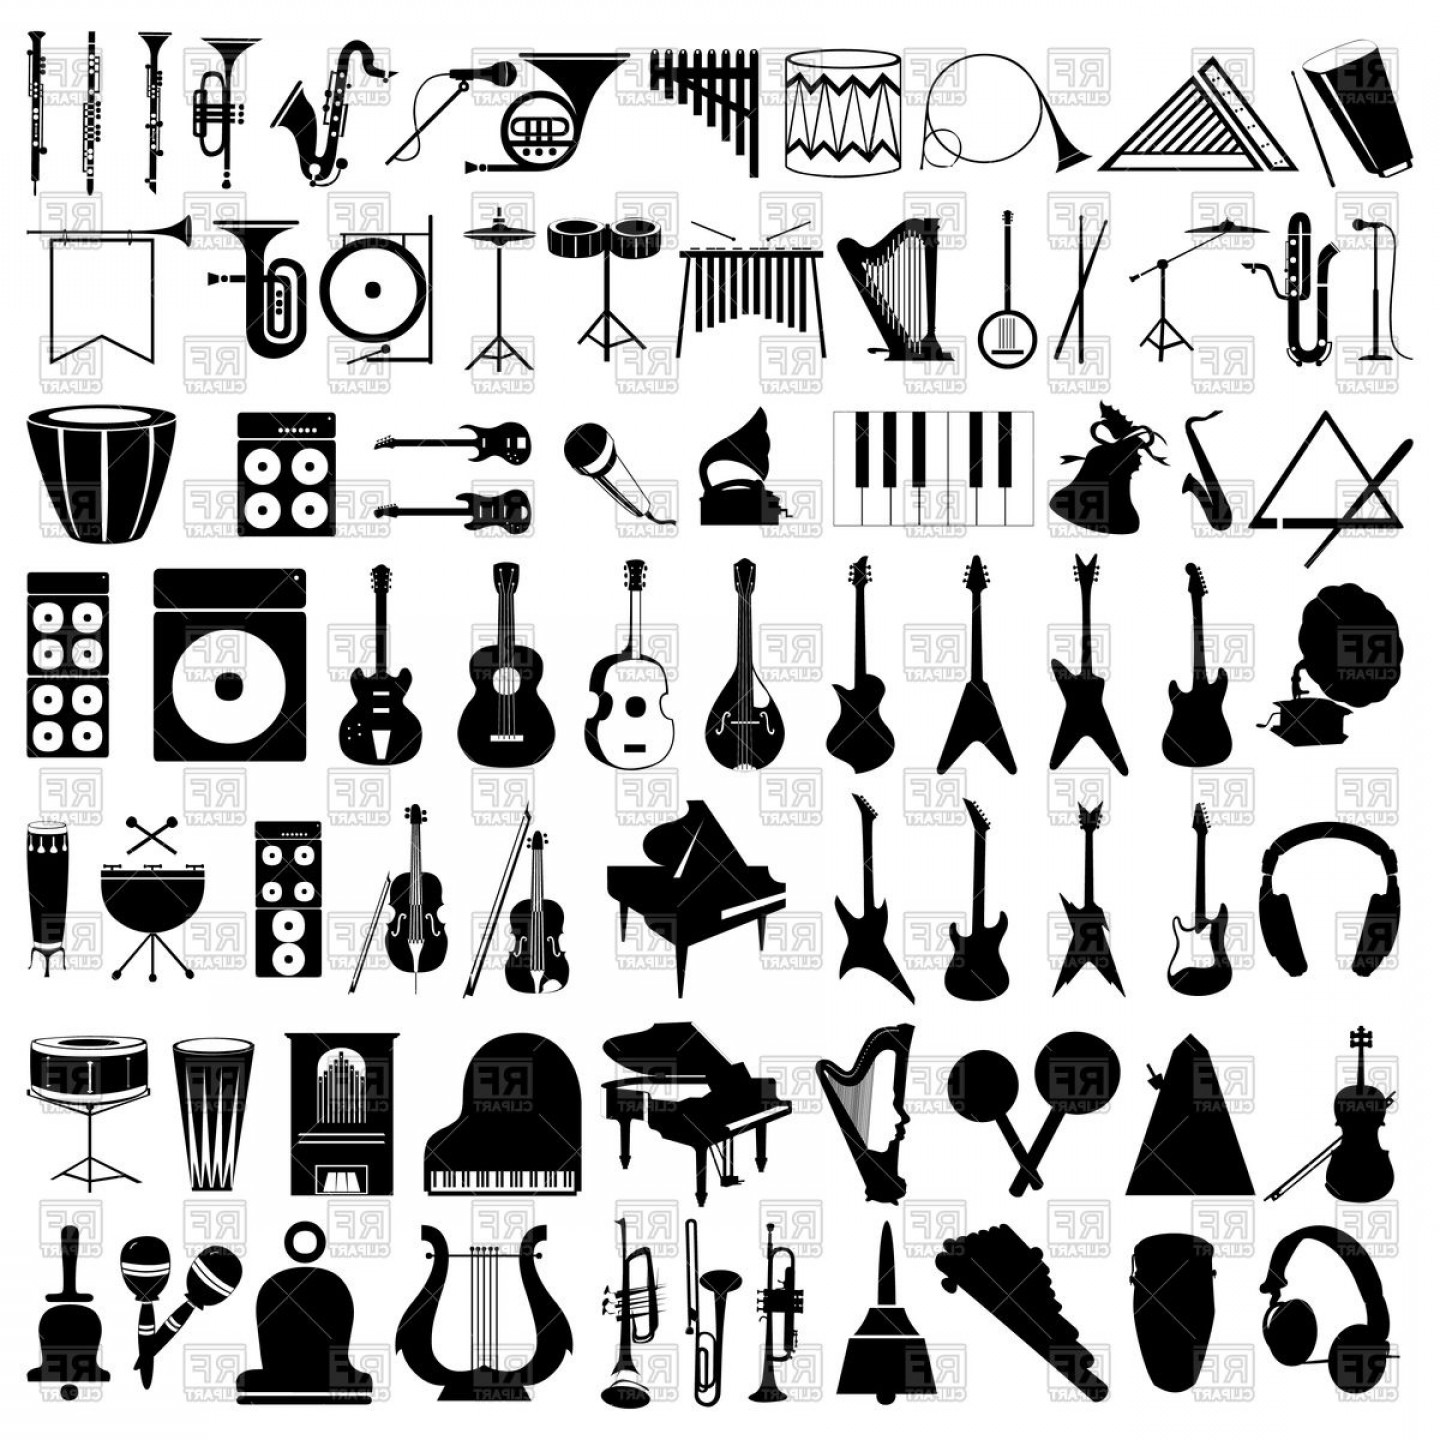 Free EPS Vector Art: Silhouettes Of Musical Instruments Vector Clipart